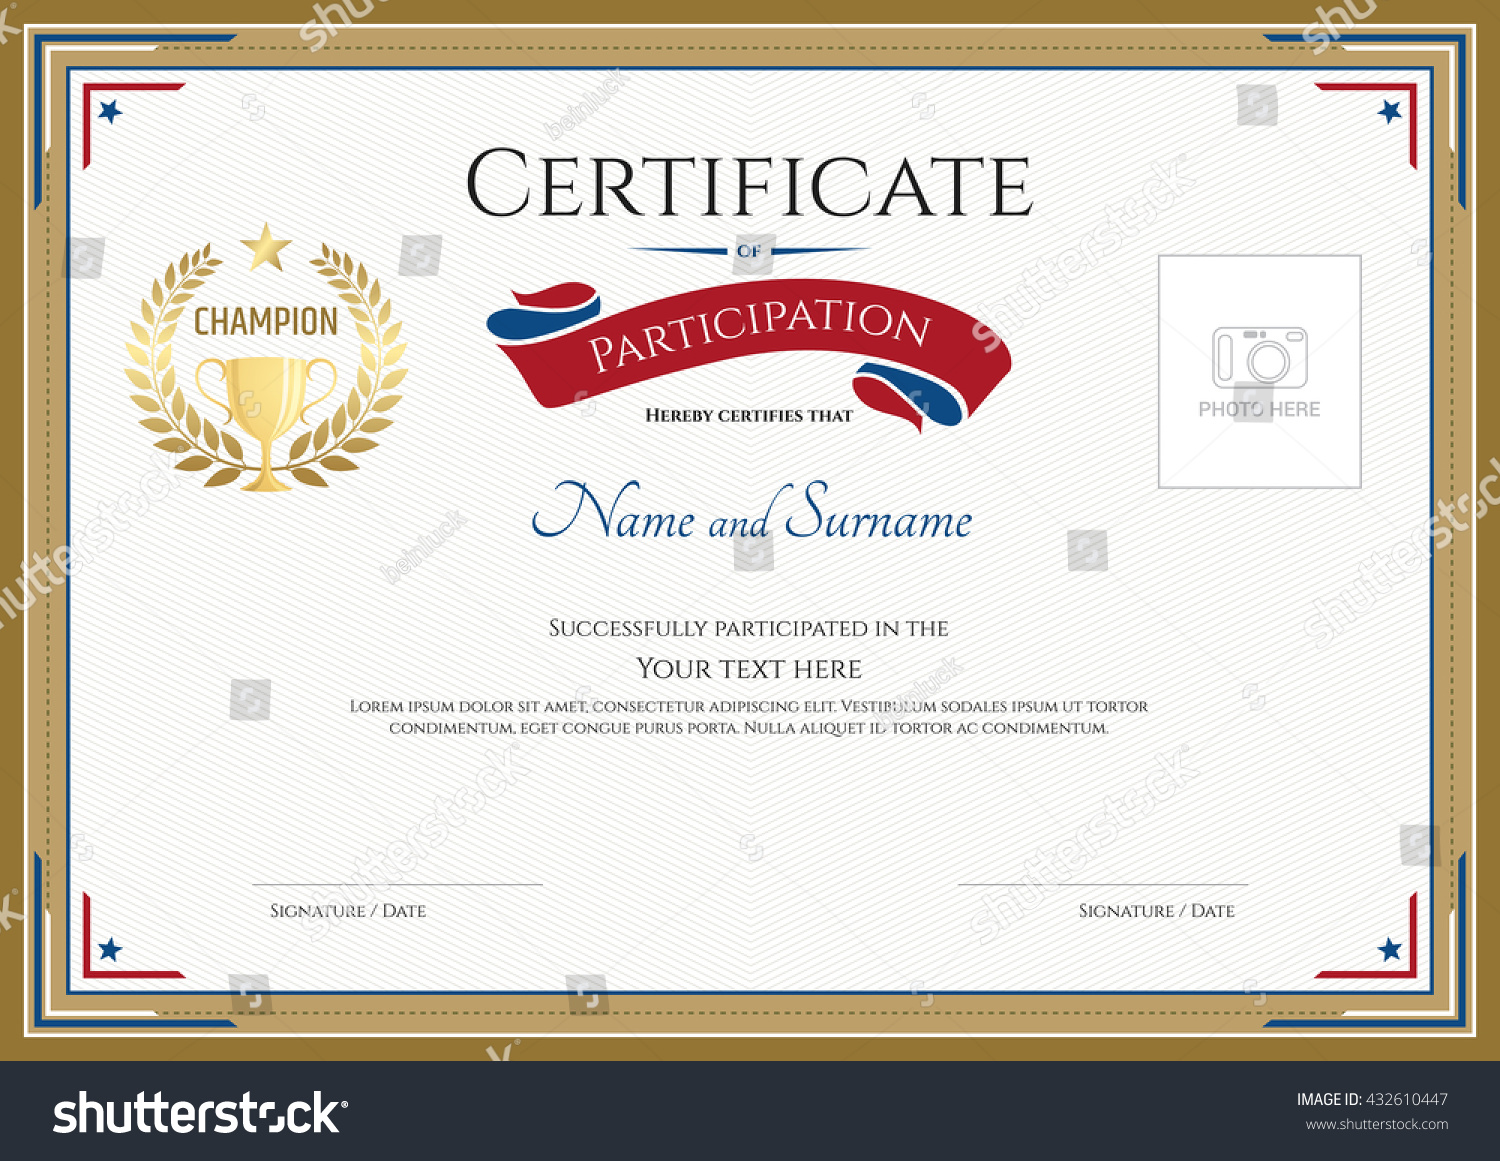 Certificate wording samples recognition certificate wording samples yadclub Image collections